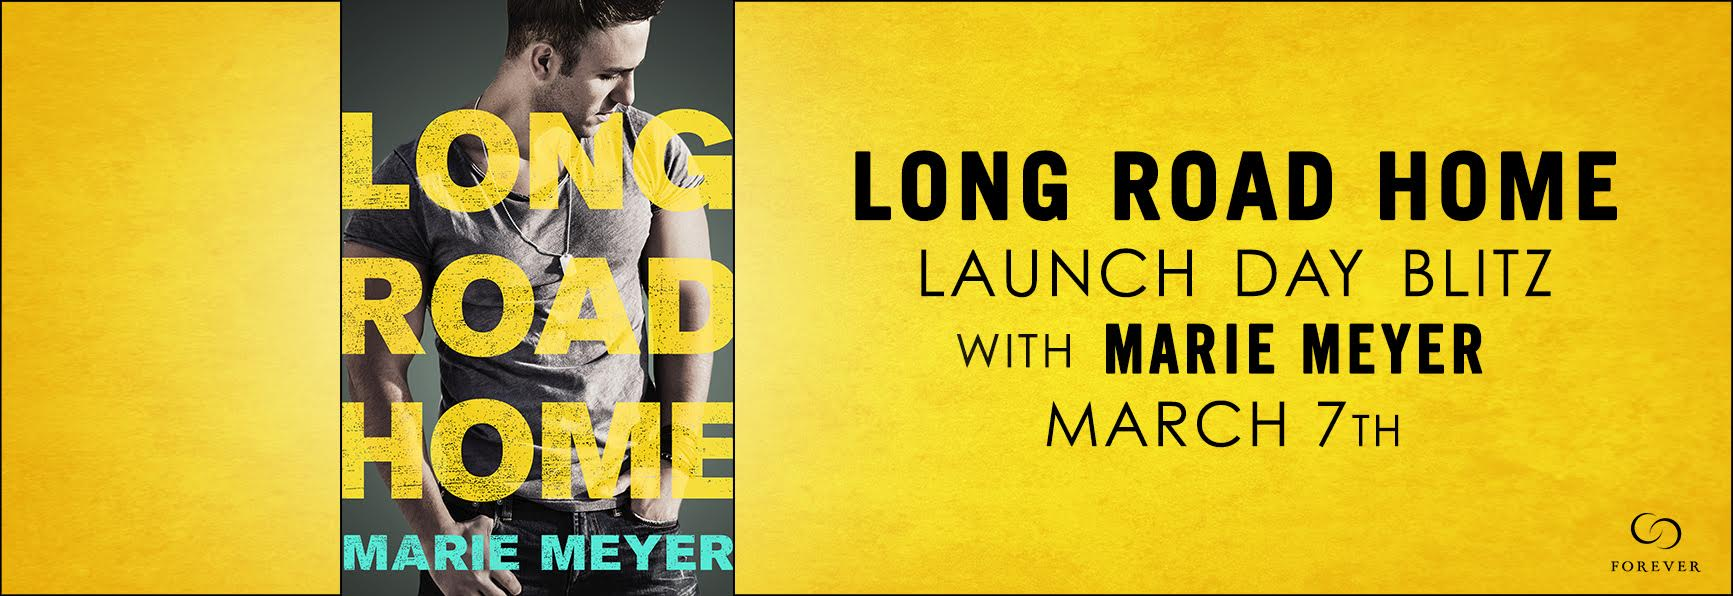 Long Road Home by Marie Meyer